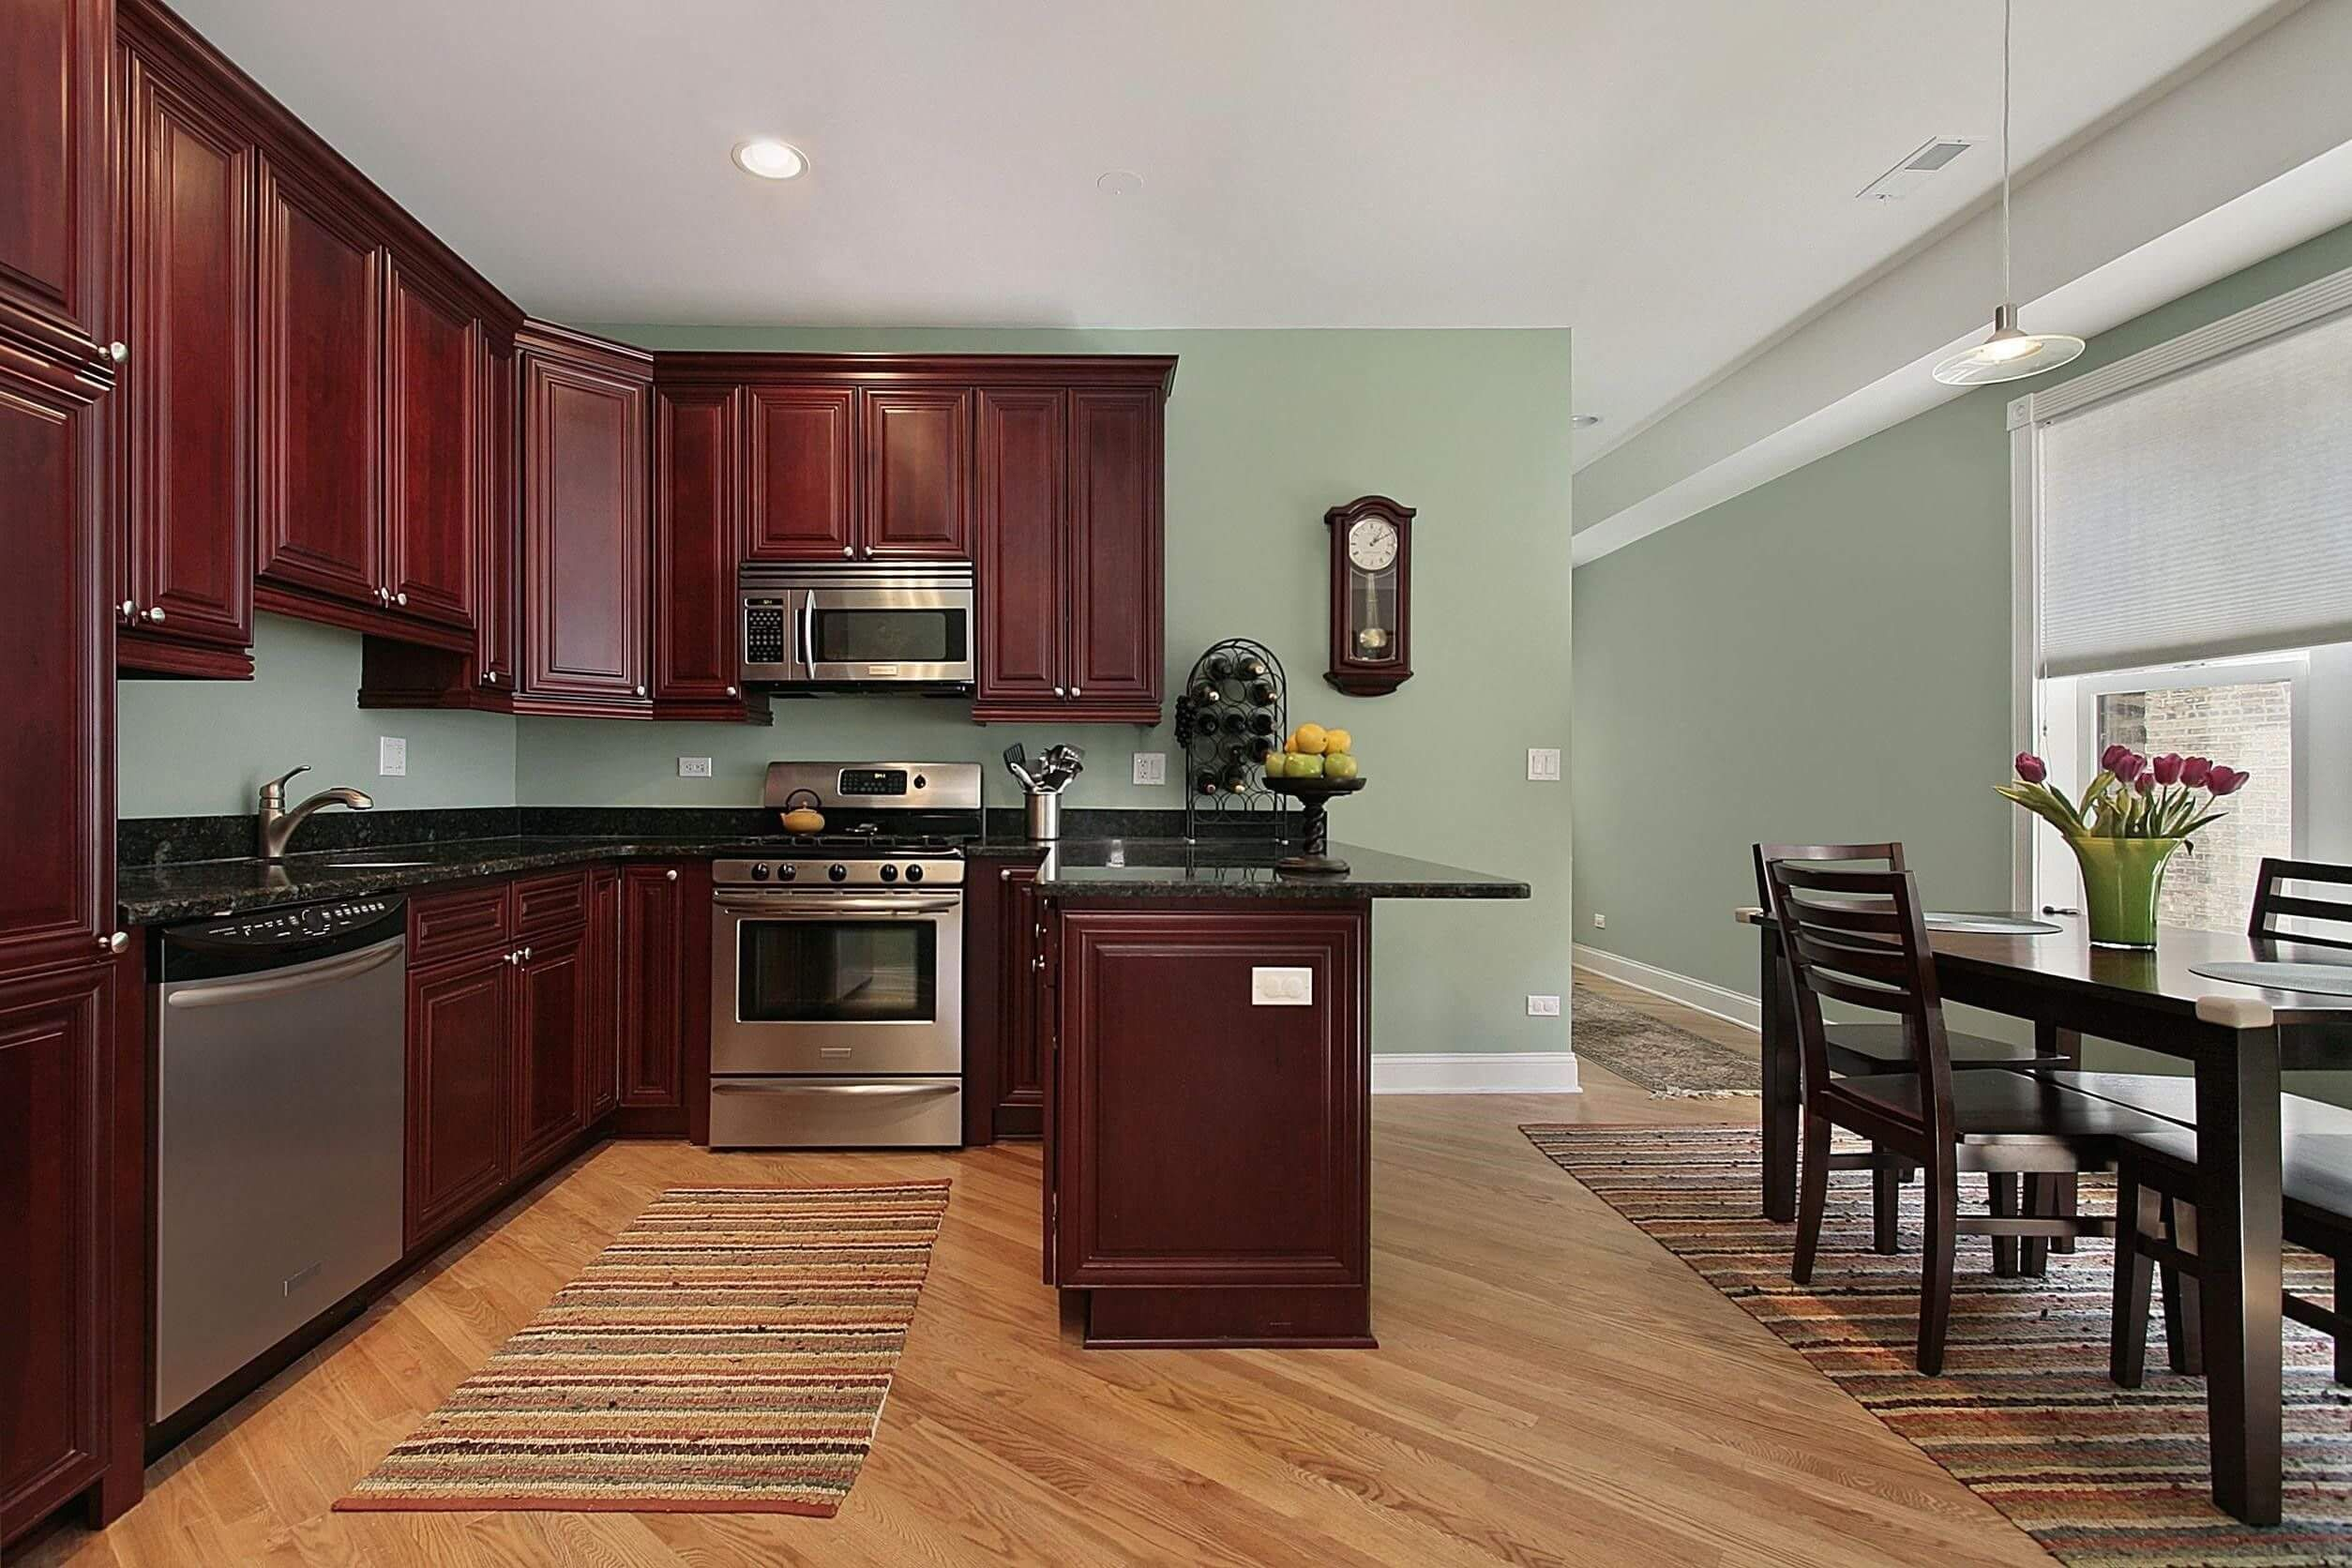 Trending Kitchen Wall Colors For The Year 2019 Green Kitchen